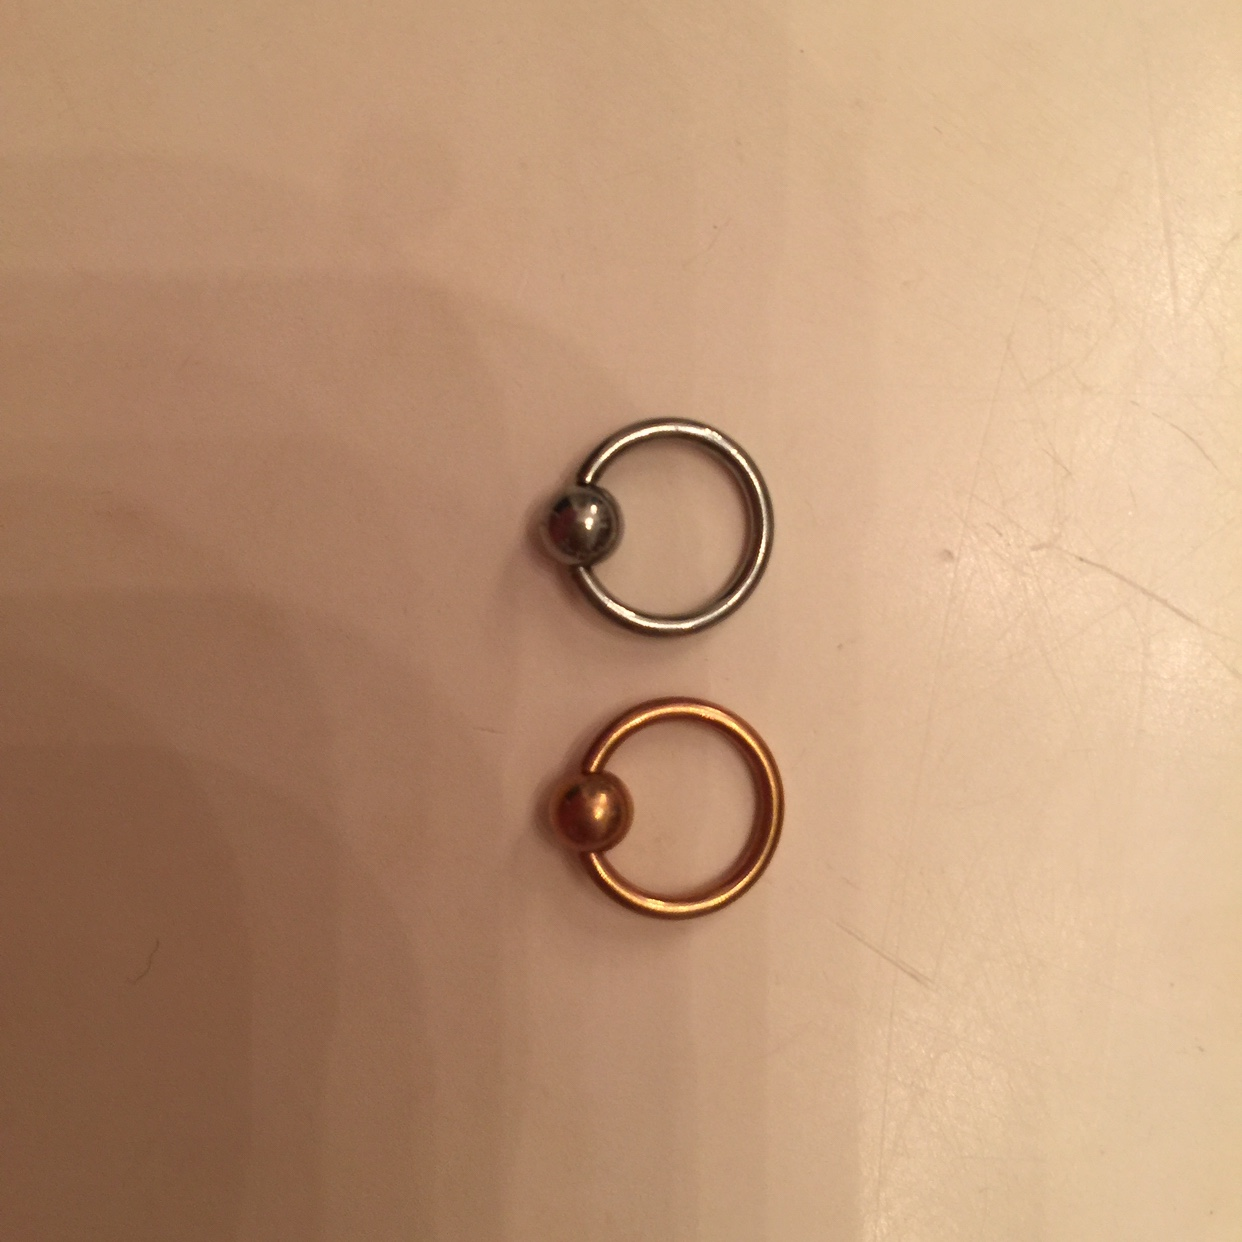 Rose Gold And Silver Captive Bead Septum Rings 925 Depop